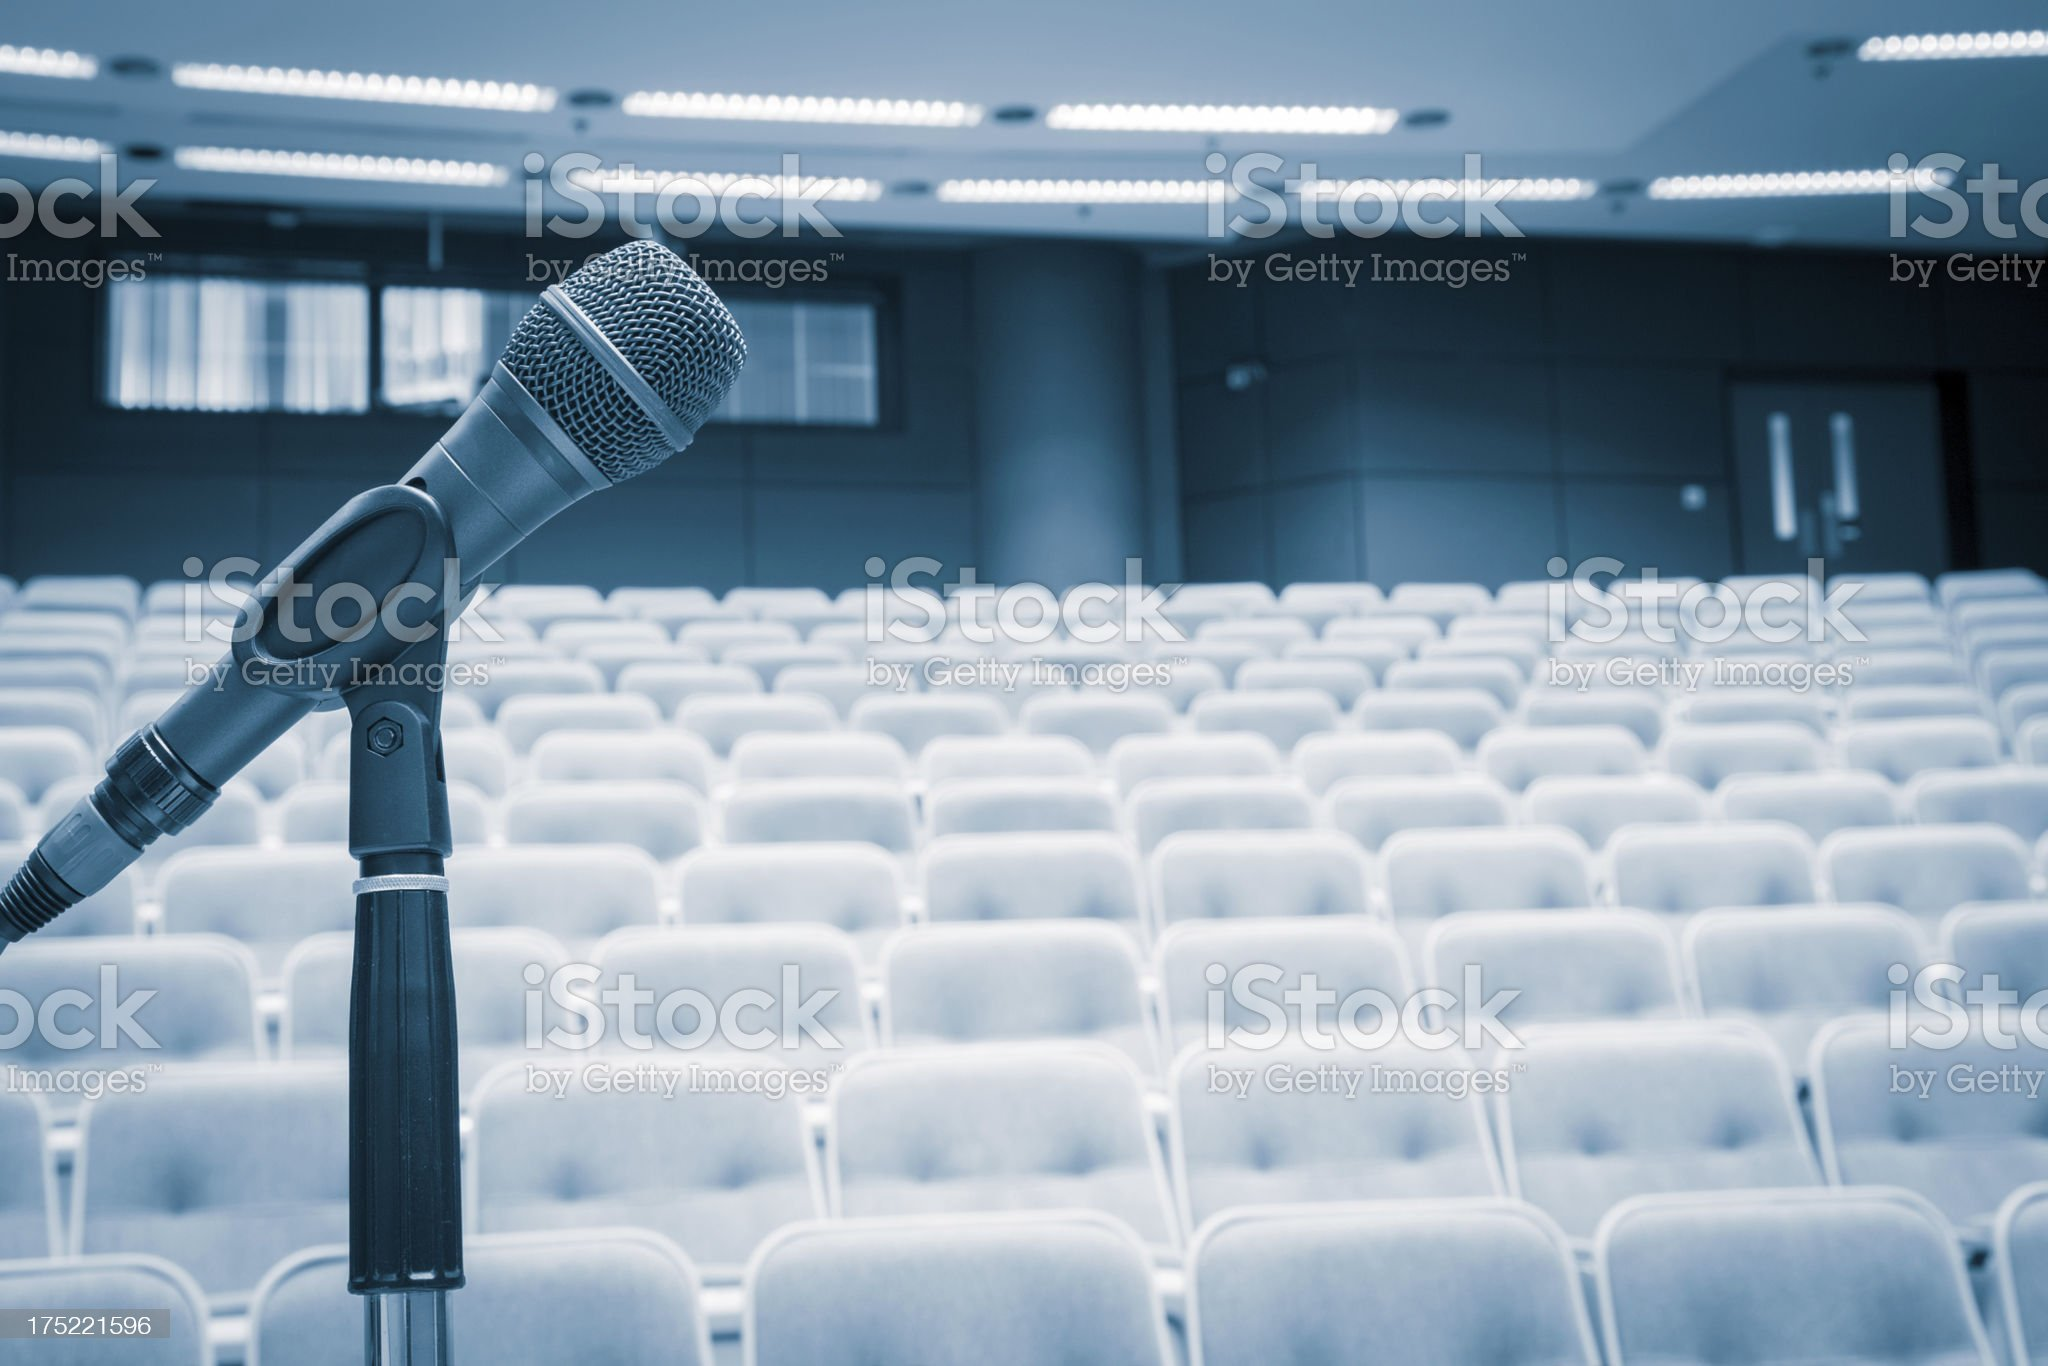 Focus on Microphone! Ready to give a Speech! royalty-free stock photo